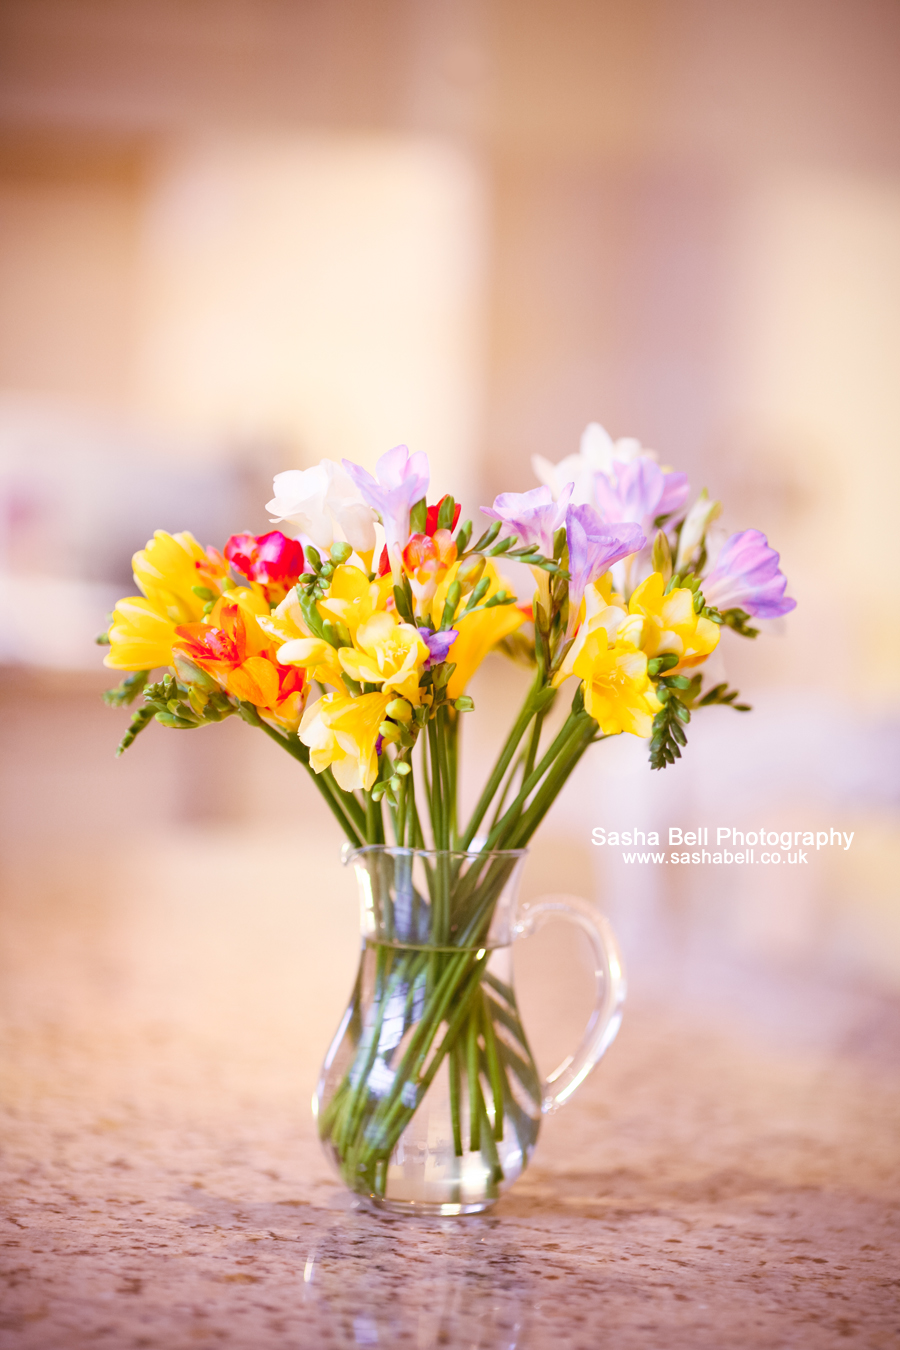 Sweet Freesias – Day 163/365